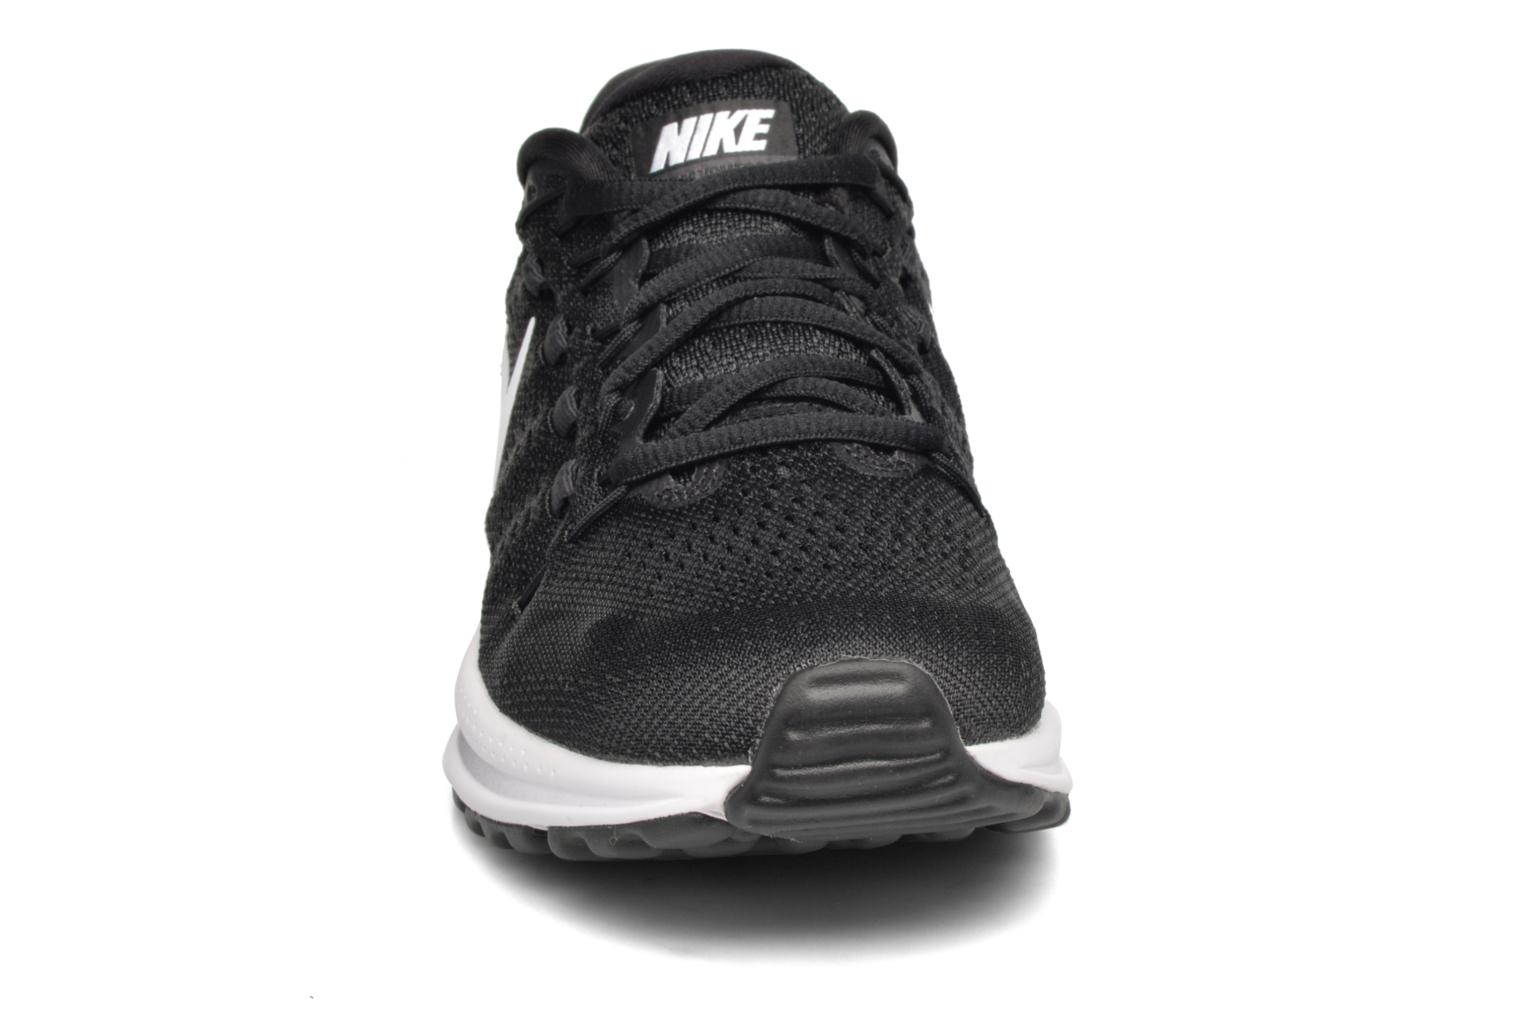 Wmns Nike Air Zoom Vomero 12 Black/white-anthracite